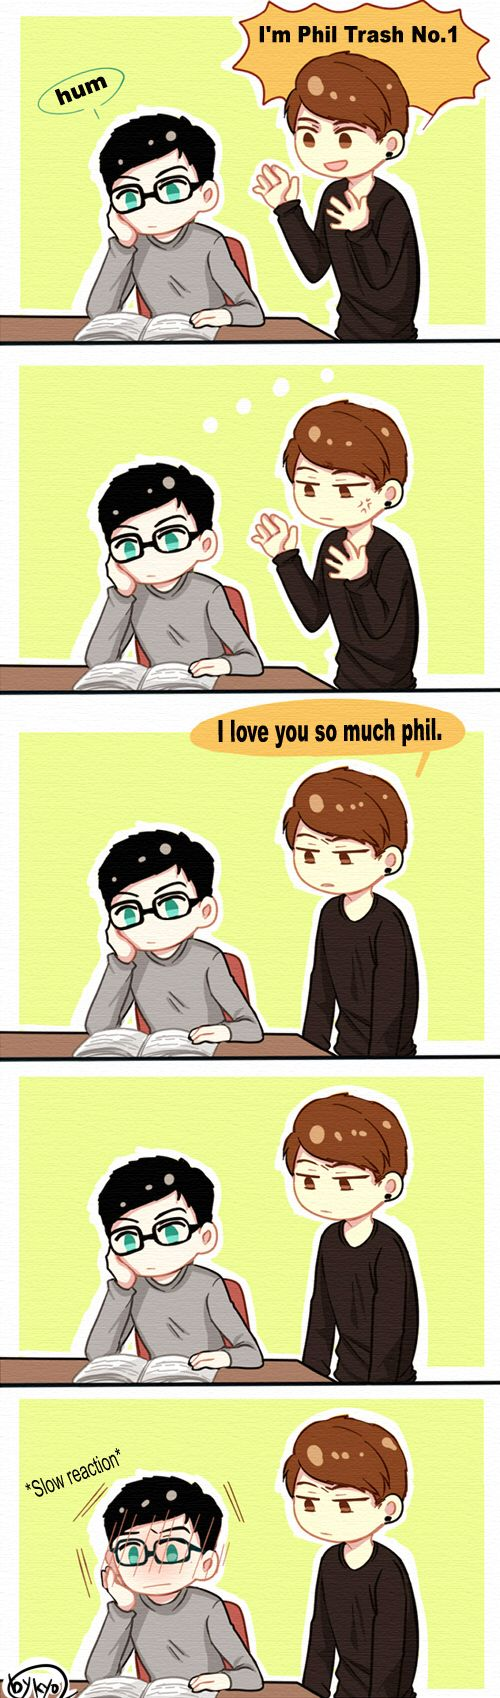 AmazingPhil and Danisnotonfire #comic